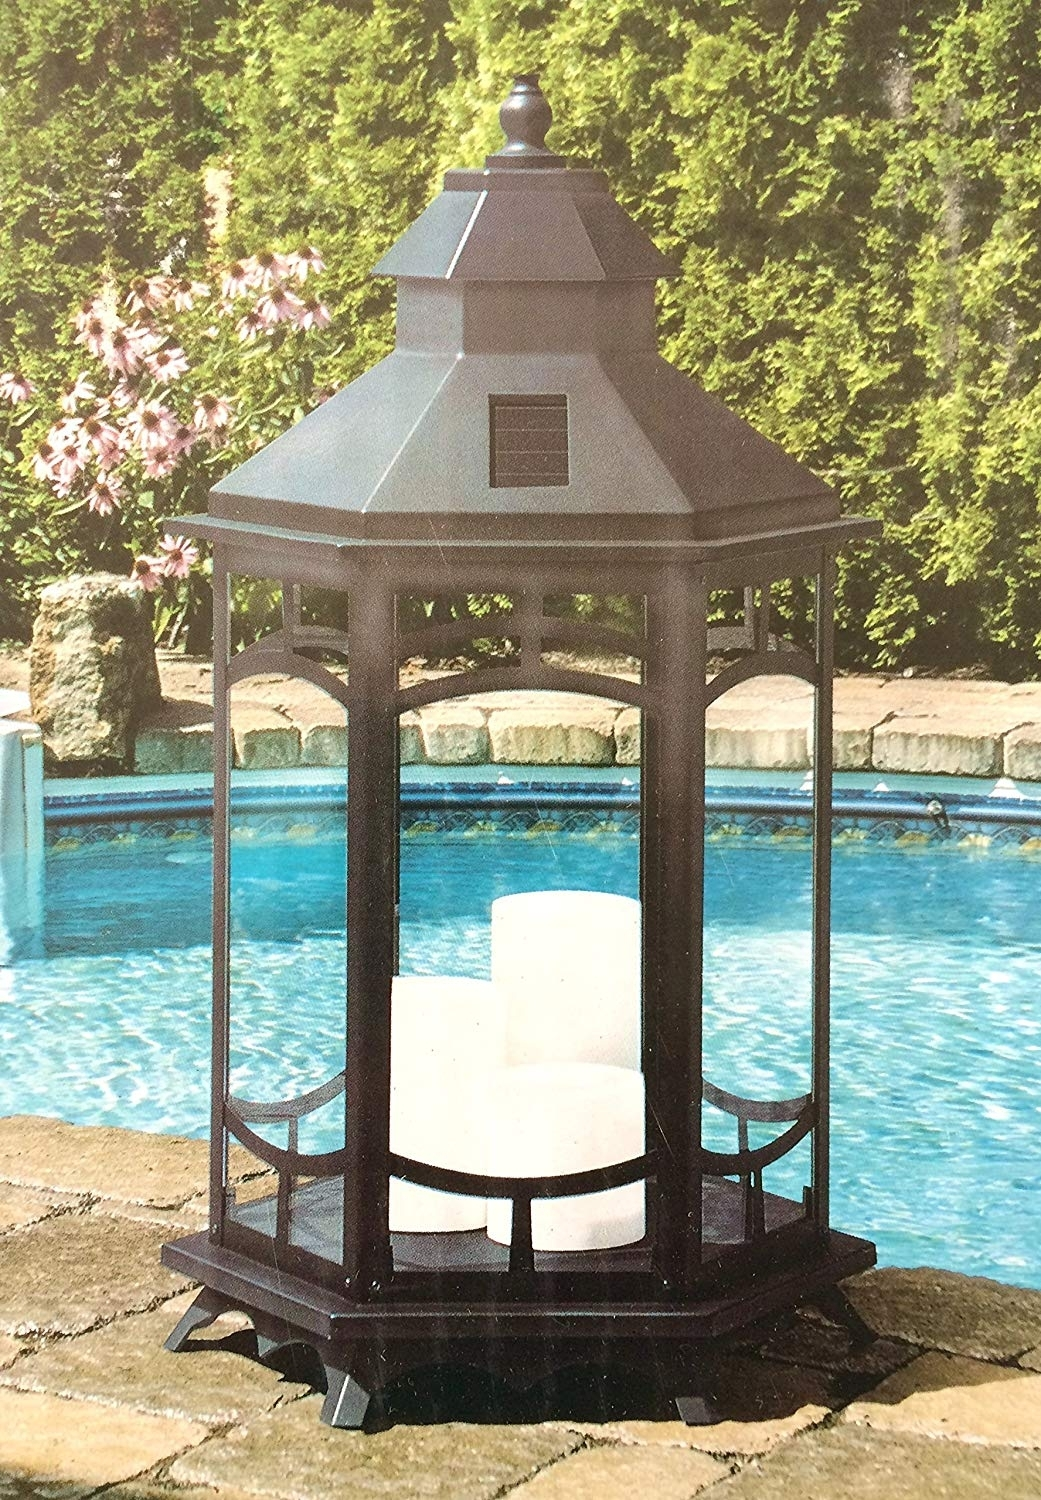 Manor House Oversized 33 In. Tall Extra Large Solar Lantern With 3 X intended for Outdoor Oversized Lanterns (Image 11 of 20)